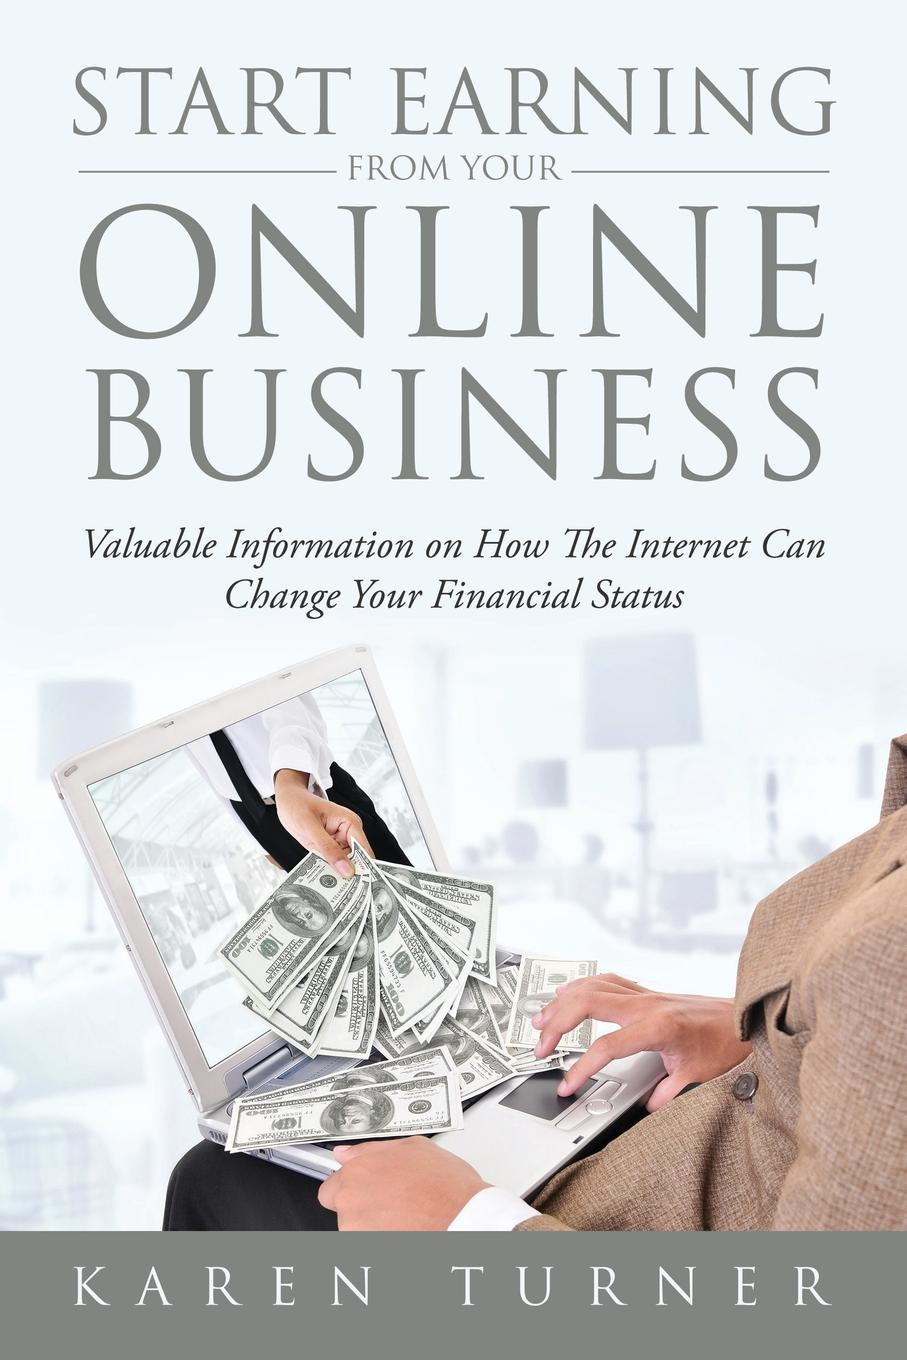 Karen Turner Start Earning from Your Online Business. Valuable Information on How The Internet Can Change Your Financial Status harvey reese how to license your million dollar idea cash in on your inventions new product ideas software web business ideas and more